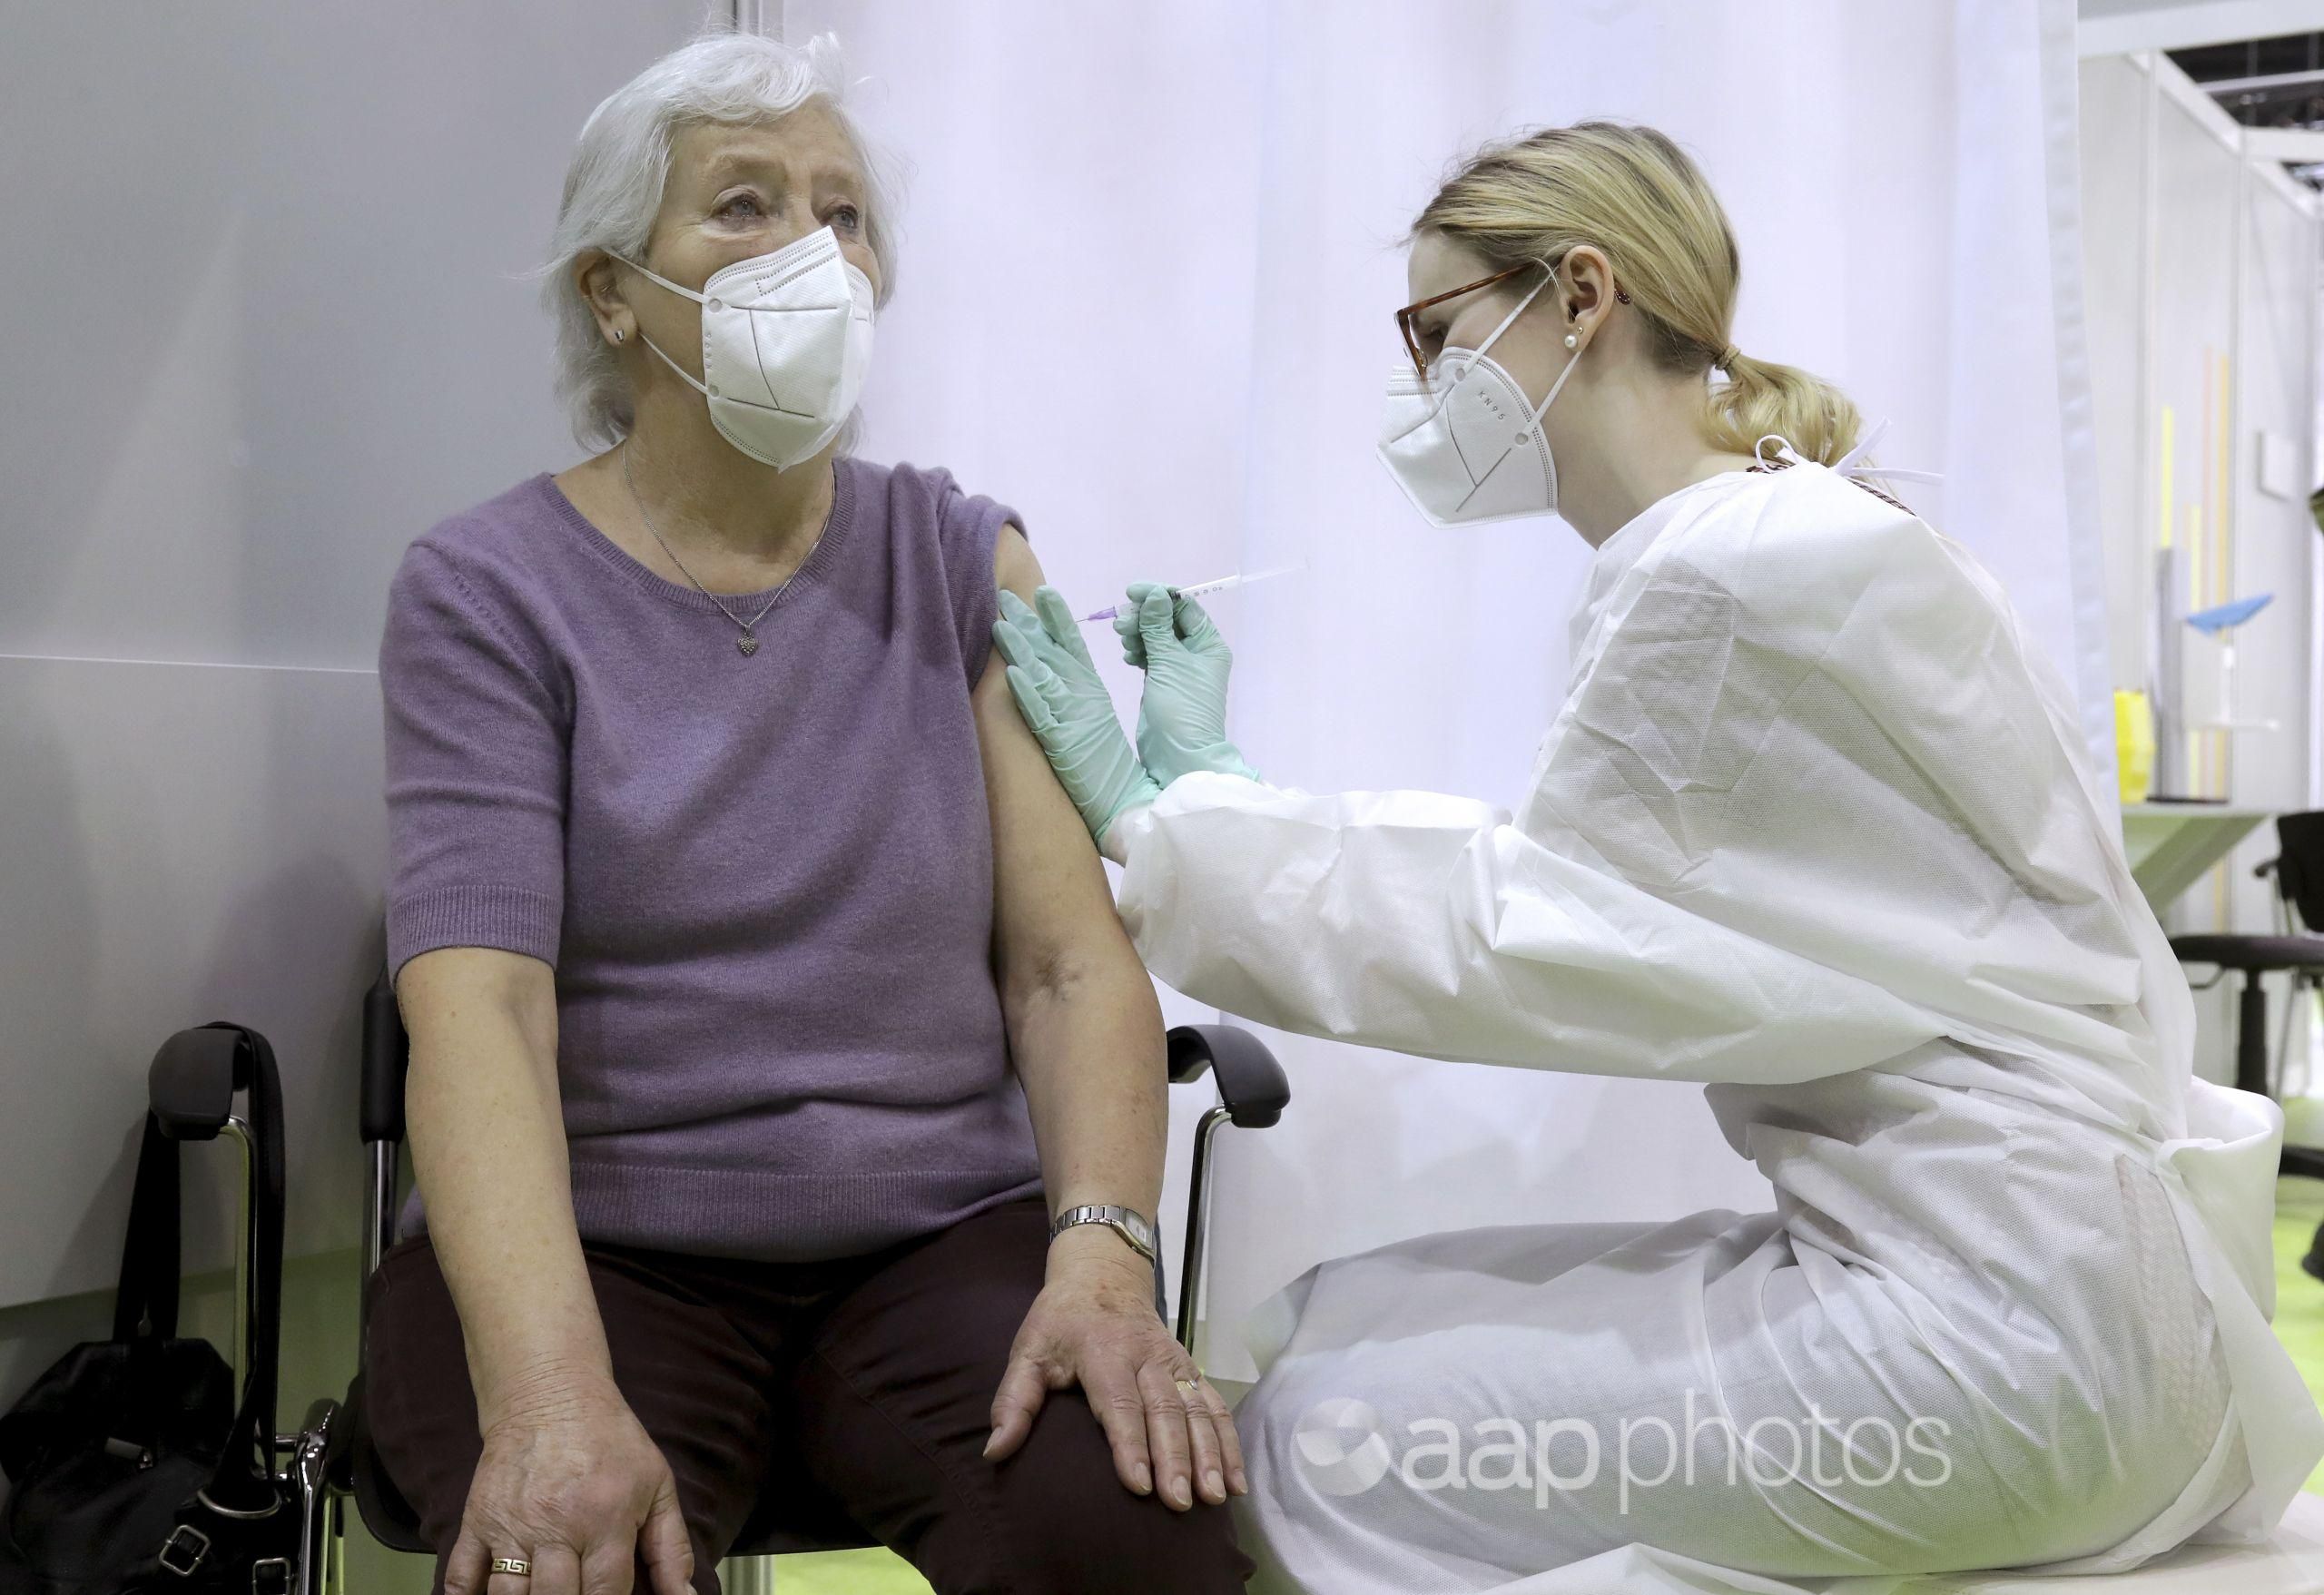 A woman receives a COVID-19 vaccination by a doctor.